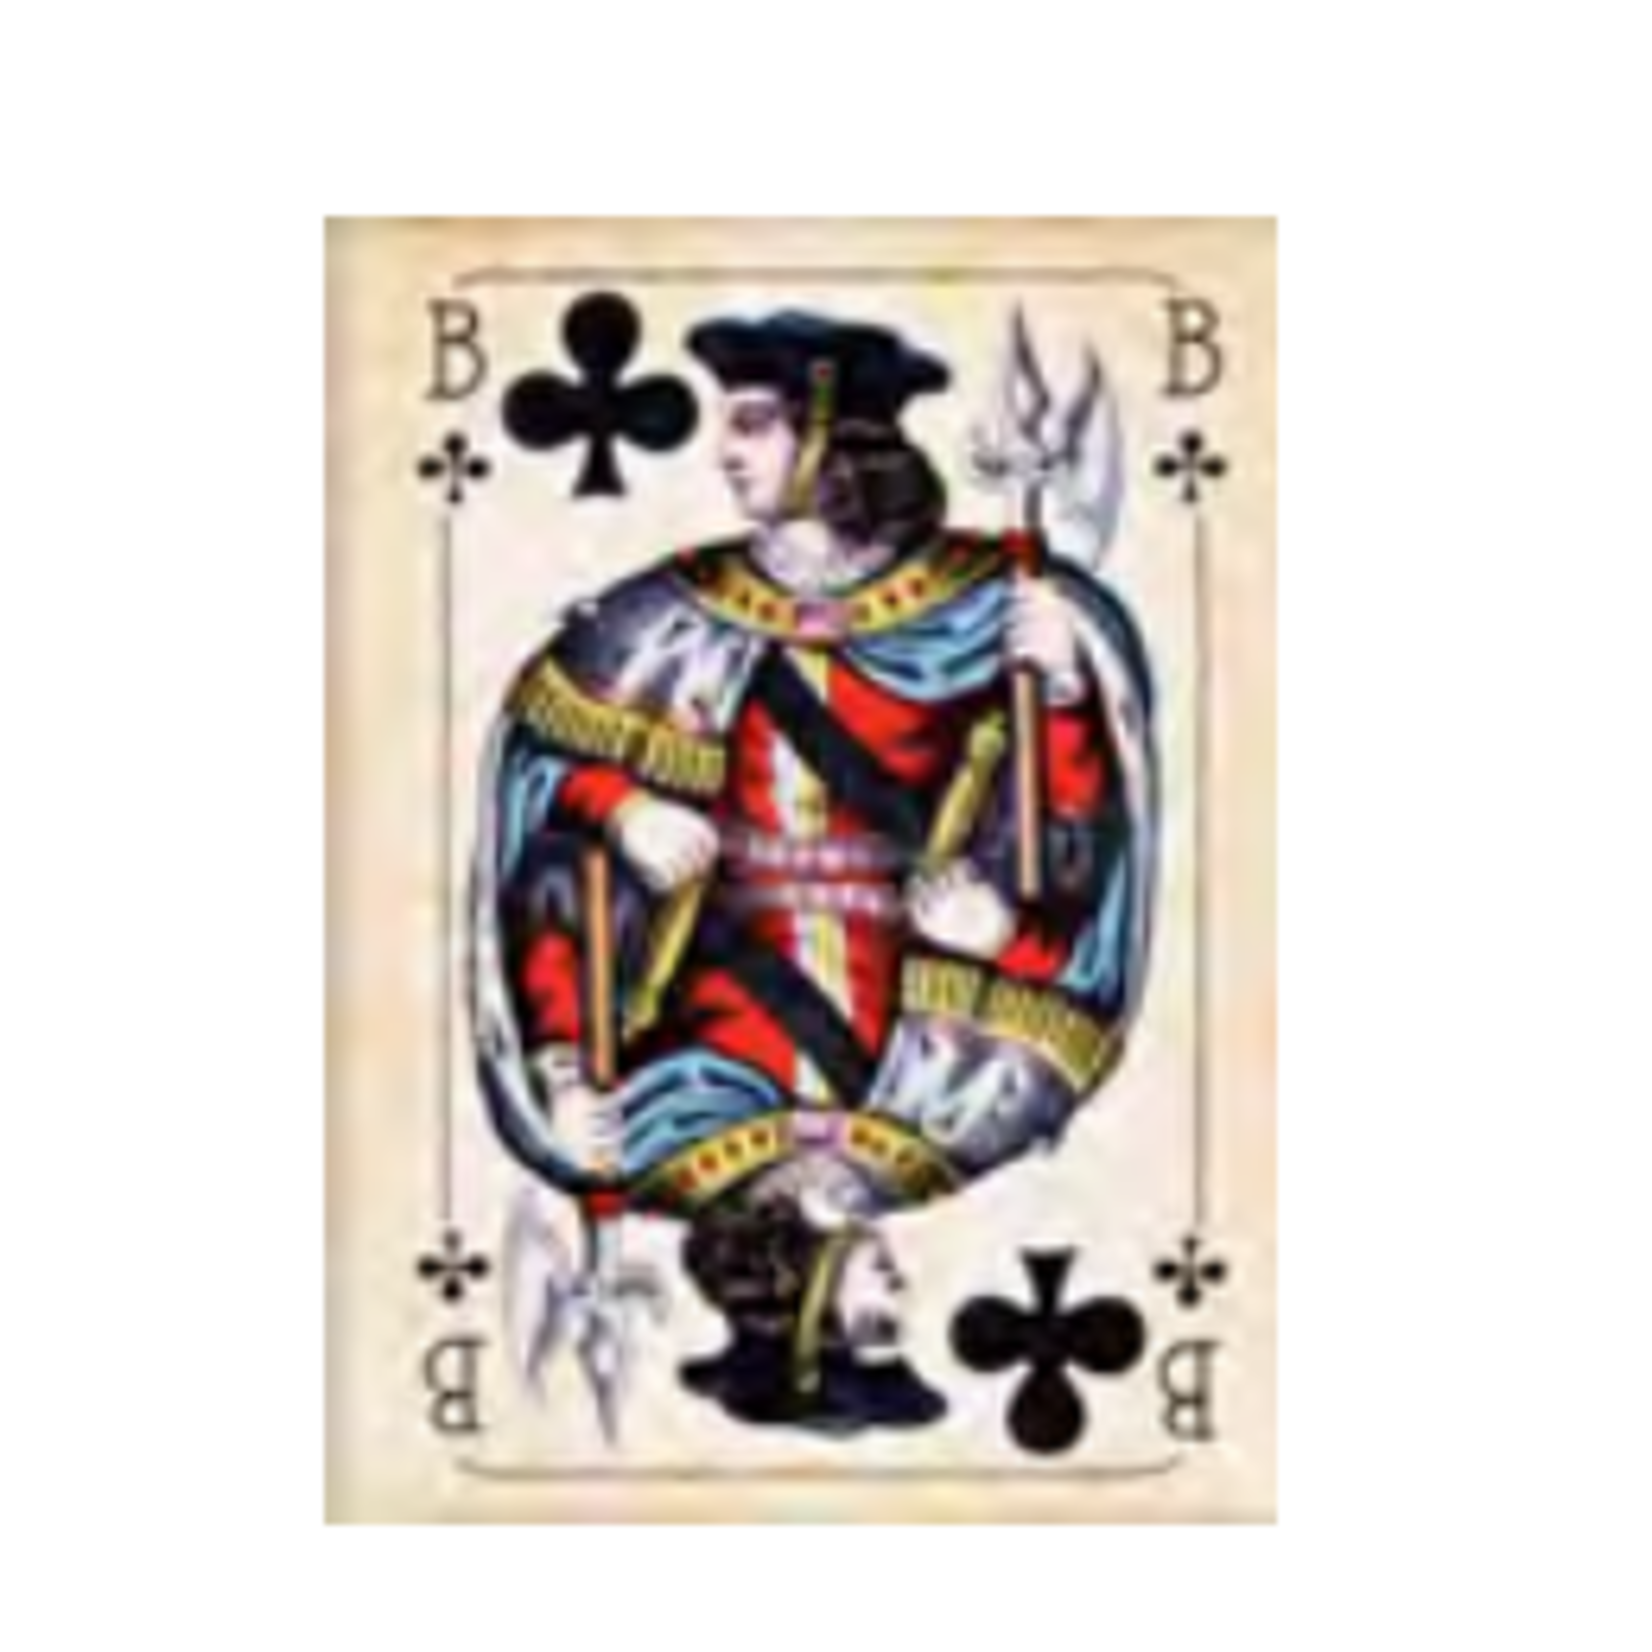 CARDS BUBE CLUBS ART - BLK WD